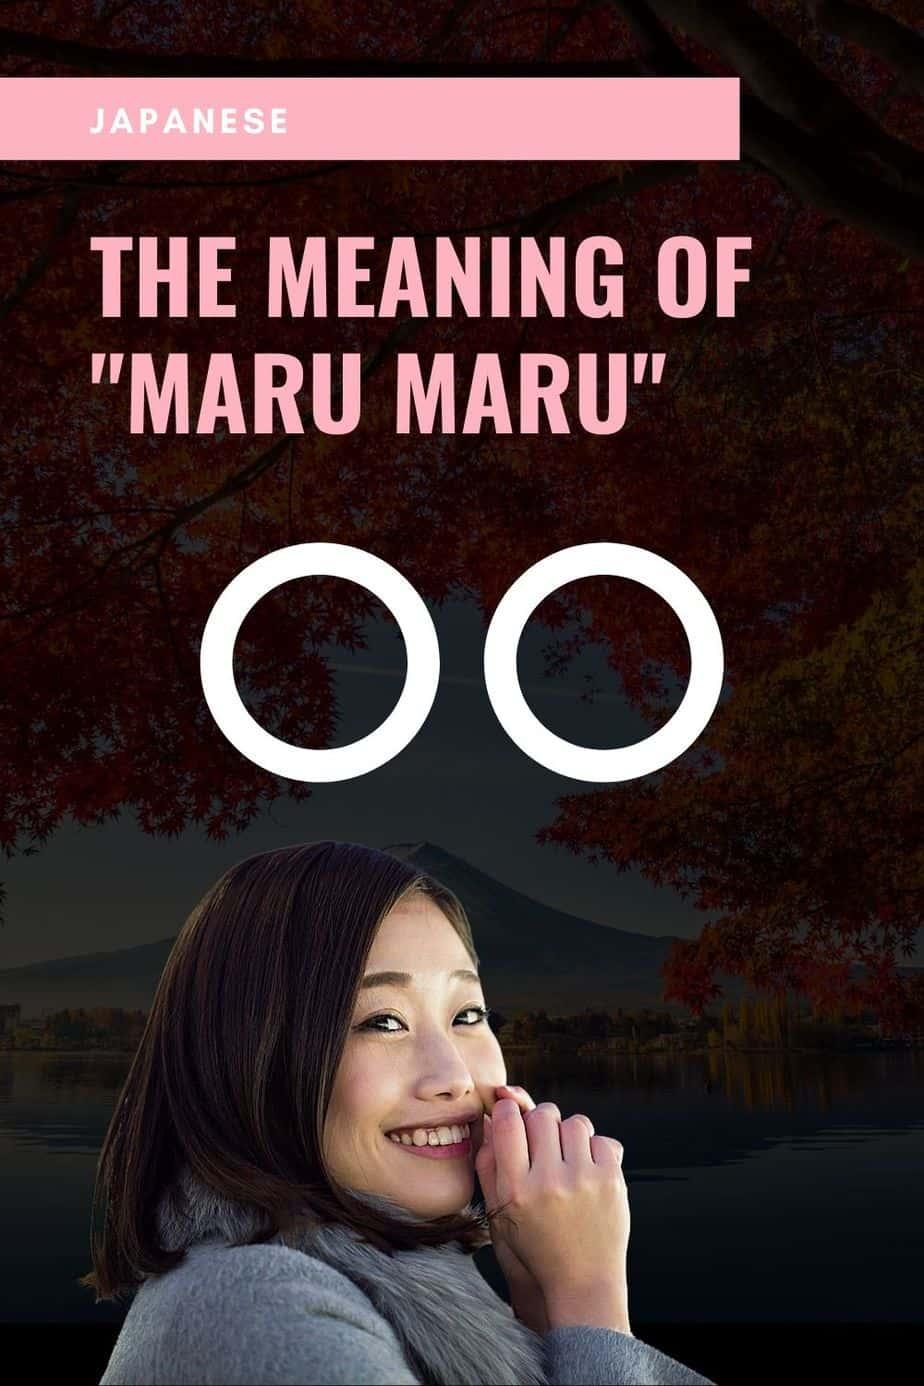 The Meaning of Maru Maru